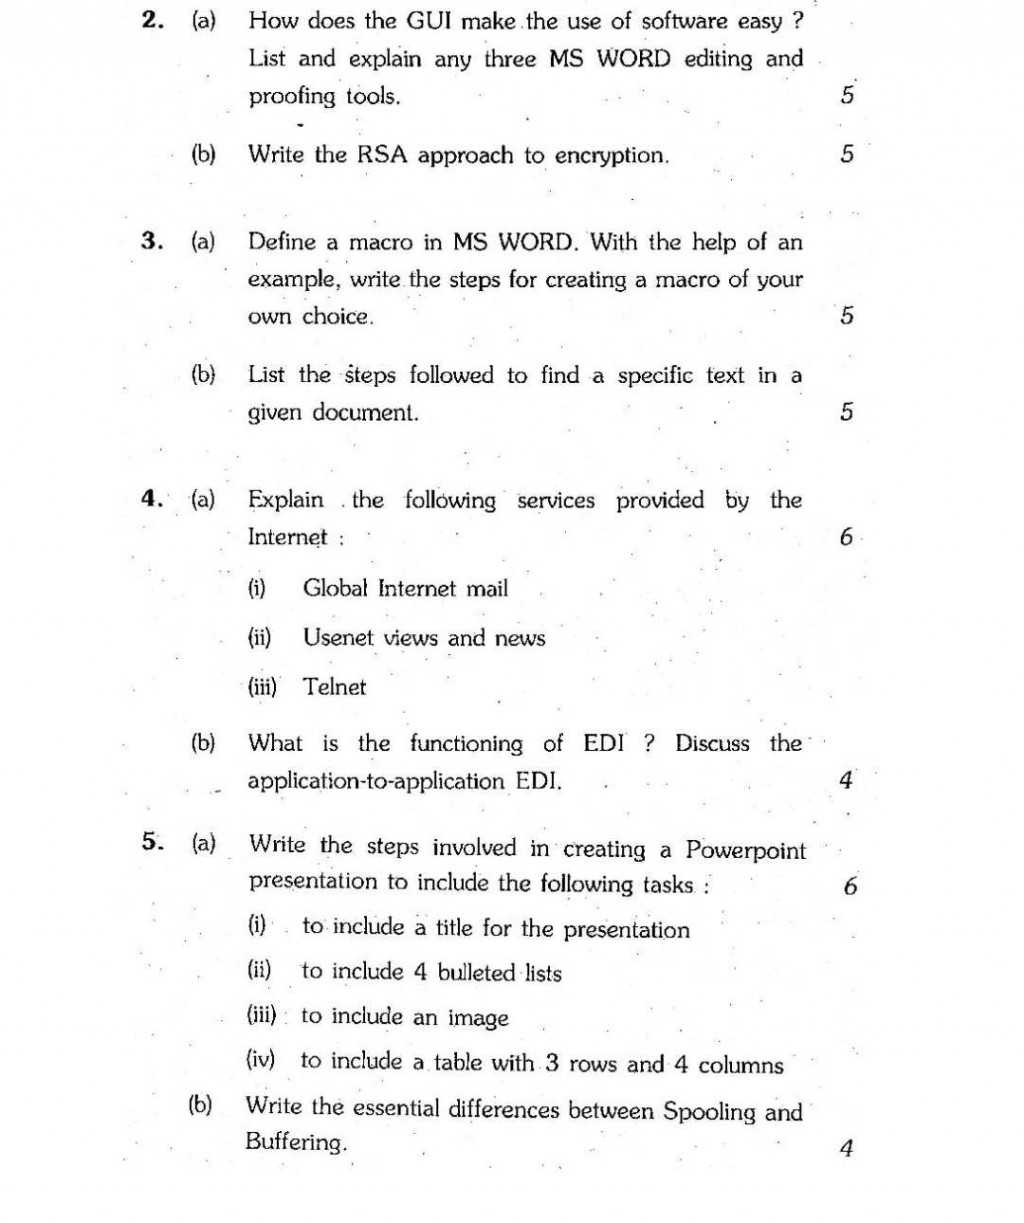 009 Ignou Computer Paper Grabbers For Essays Essay Imposing Good Interesting Attention College Large